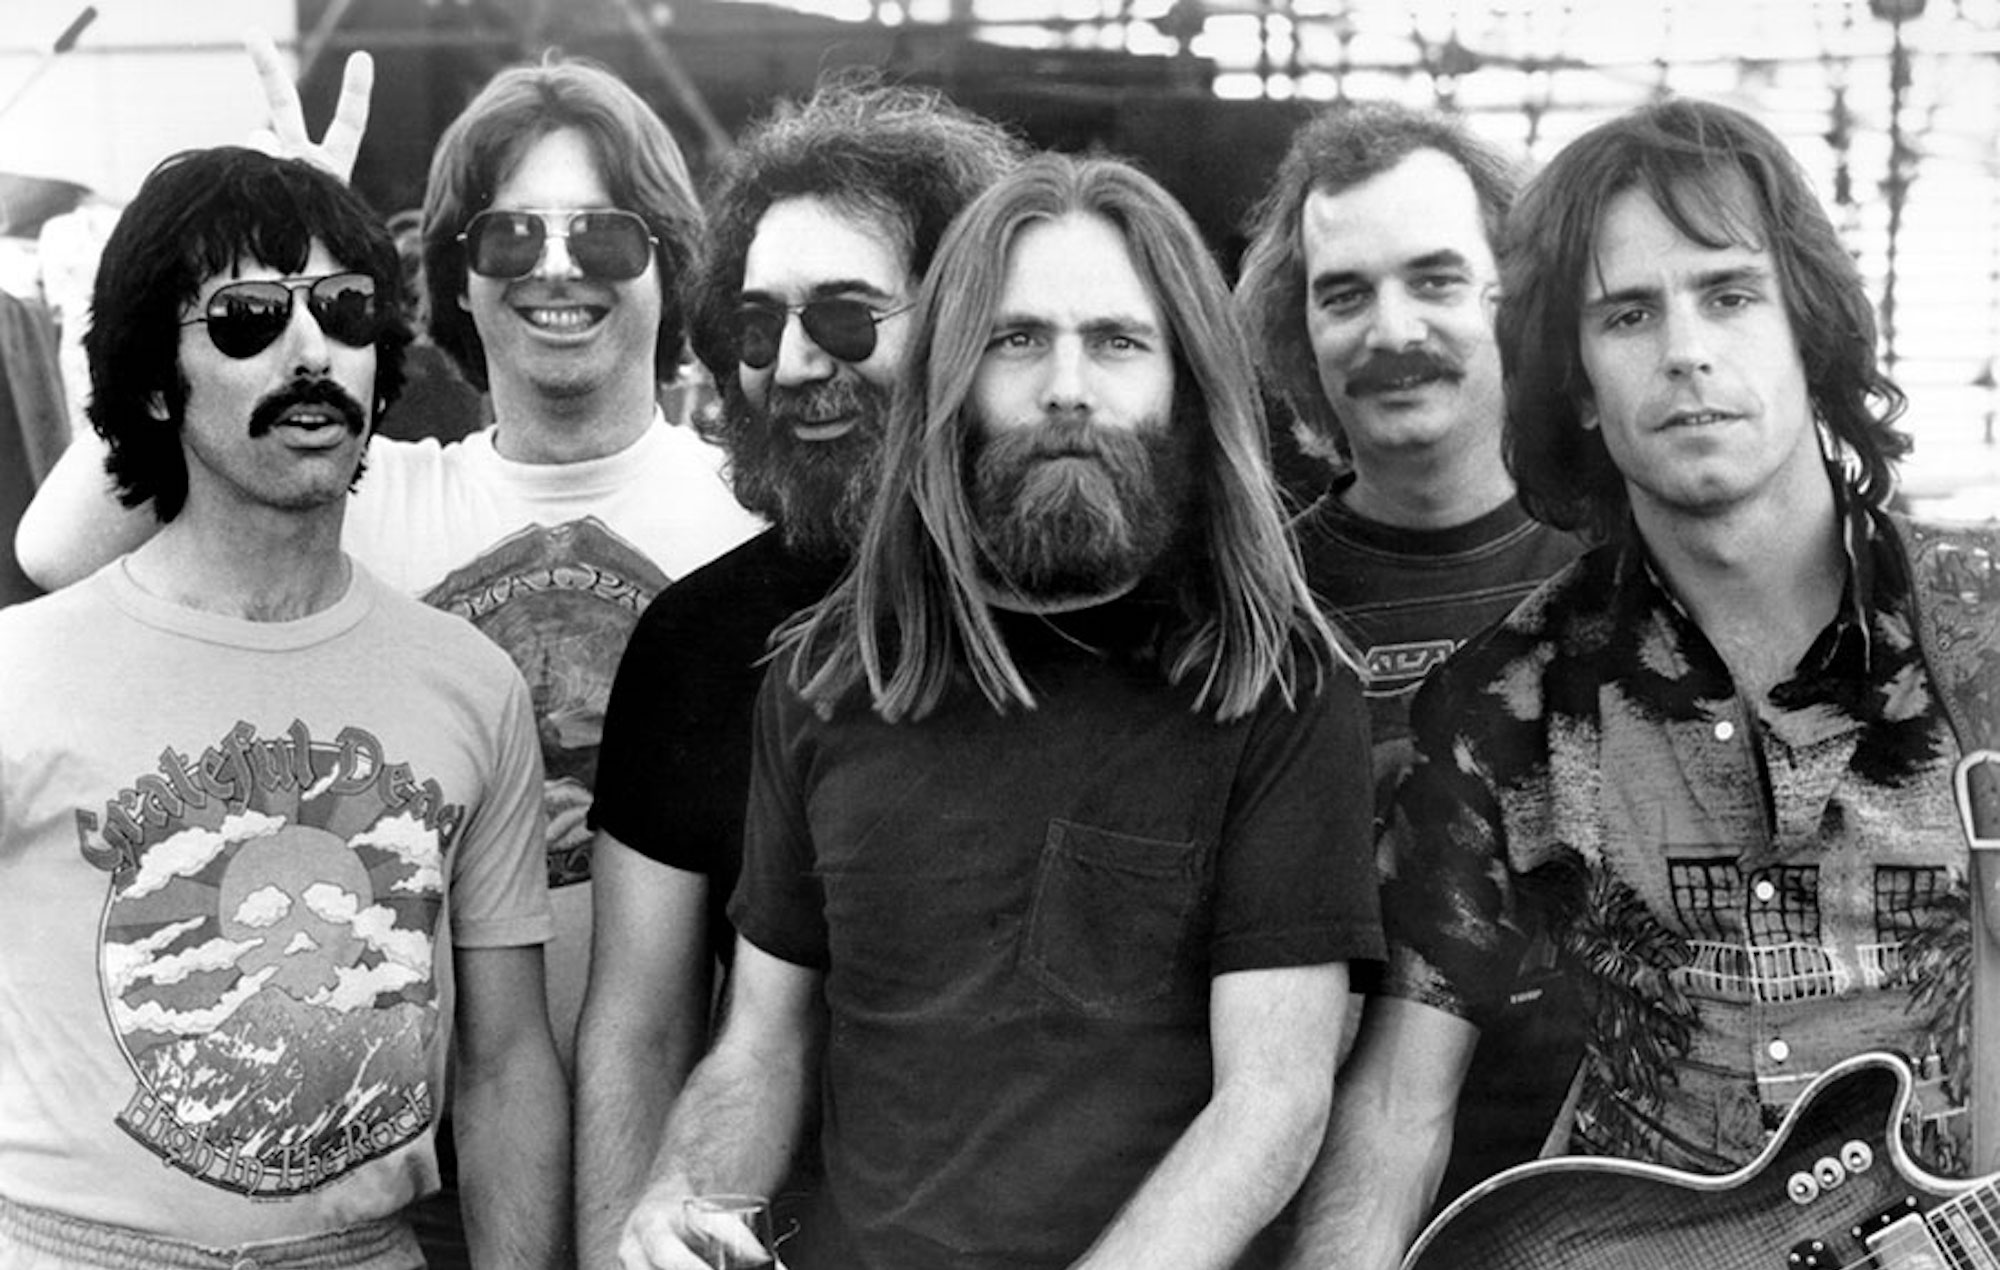 COSMO  Grateful Dead t-shirt from 1967 breaks record at auction sale